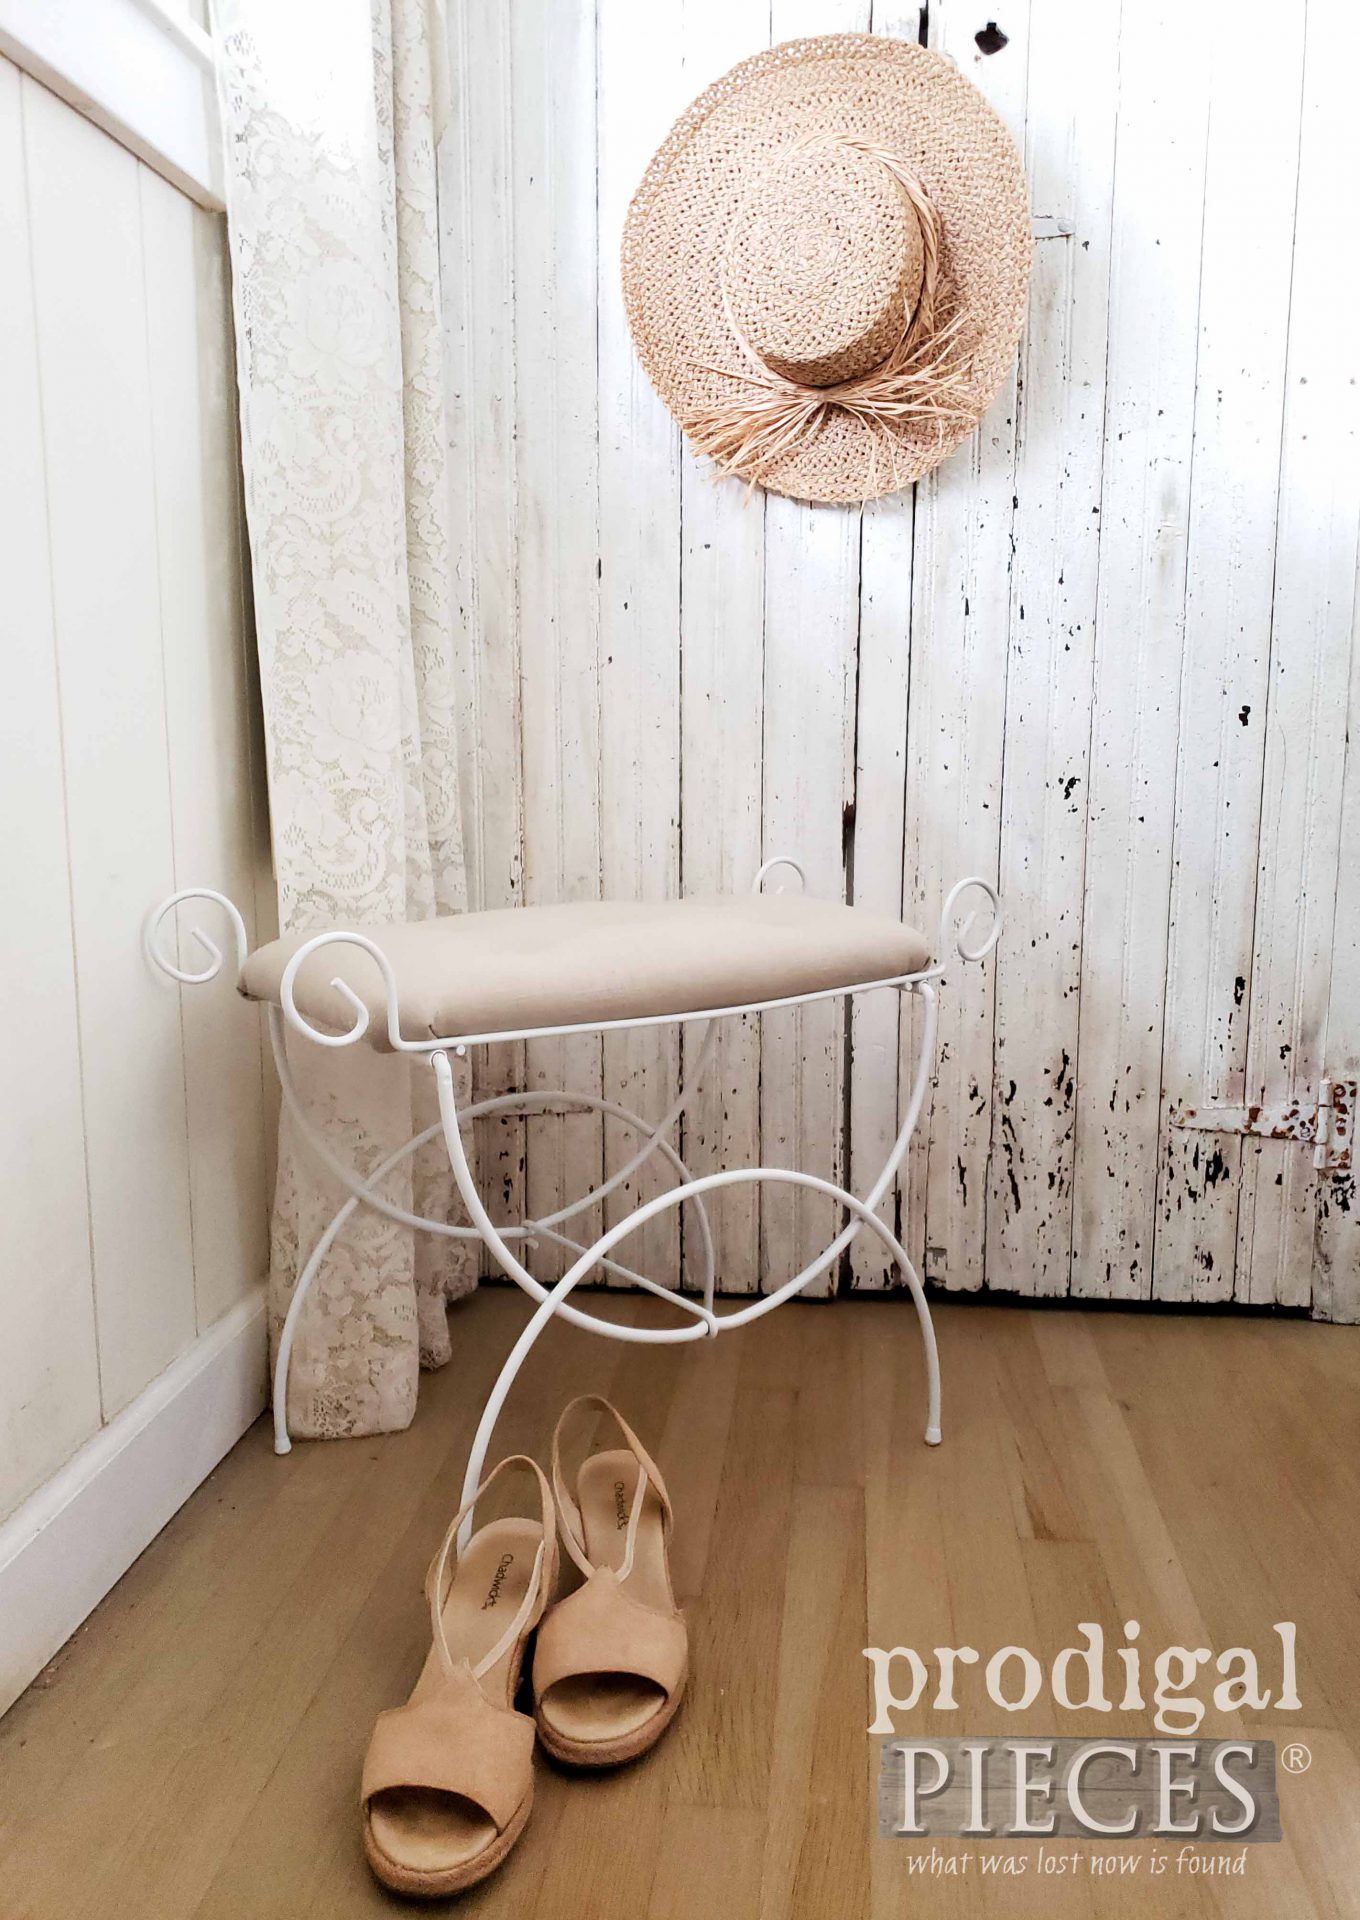 Beautiful Vintage Wire Vanity Seat with Tufted Linen Upholstery | Tutorial by Larissa of Prodigal Pieces | prodigalpieces.com #prodigalpieces #diy #furniture #home #homedecor #farmhouse #vintage